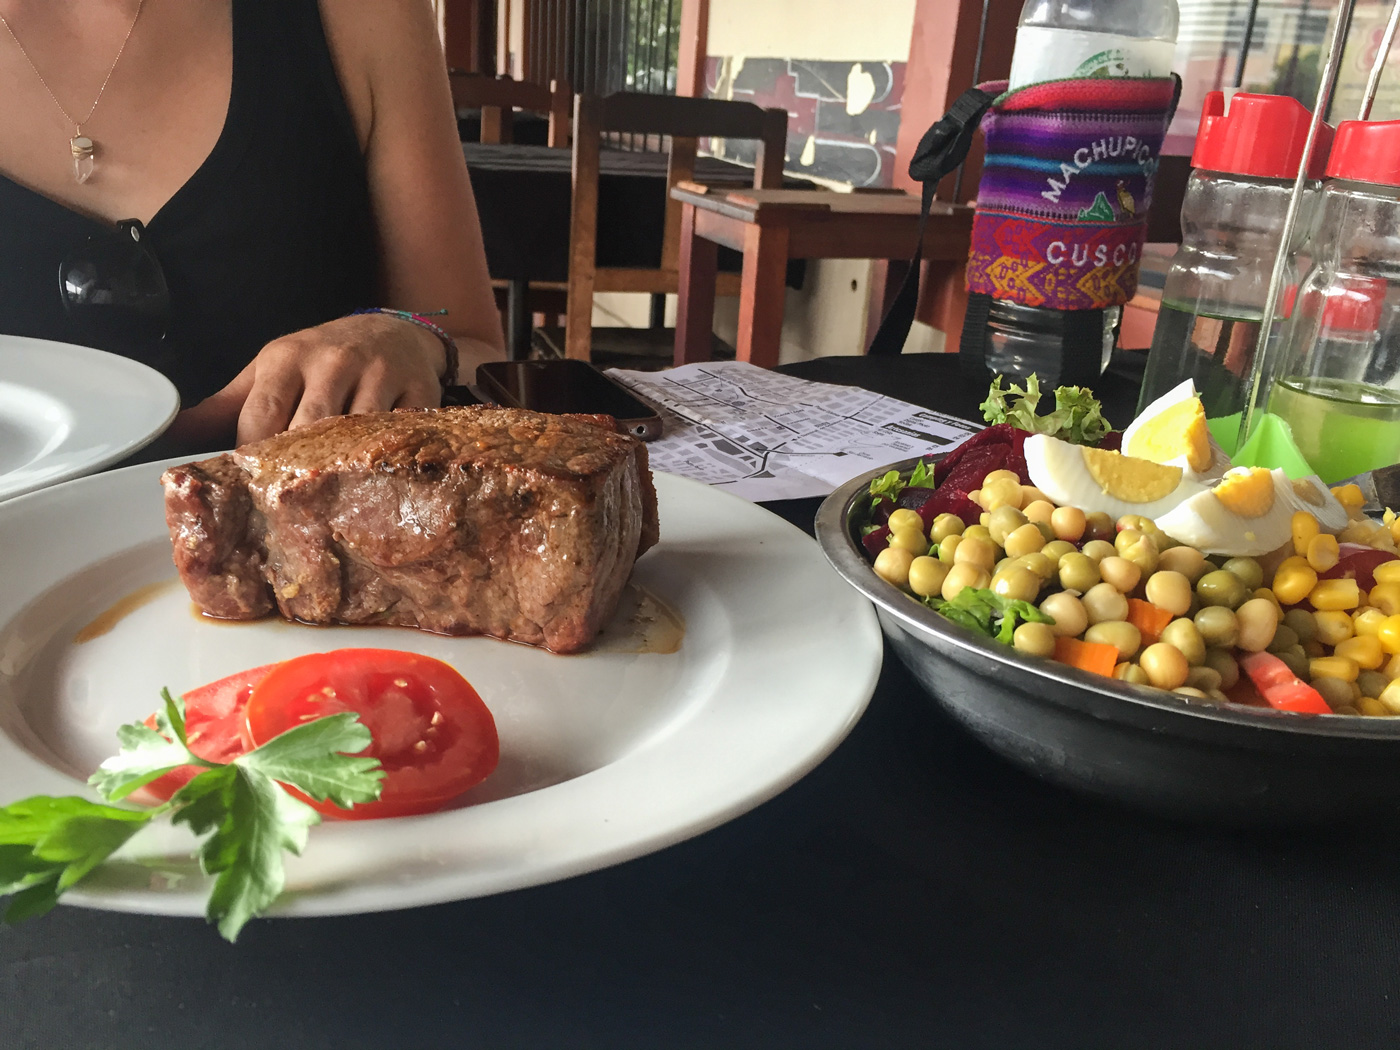 The first steak did not disappoint, and it was only $13 AUD!